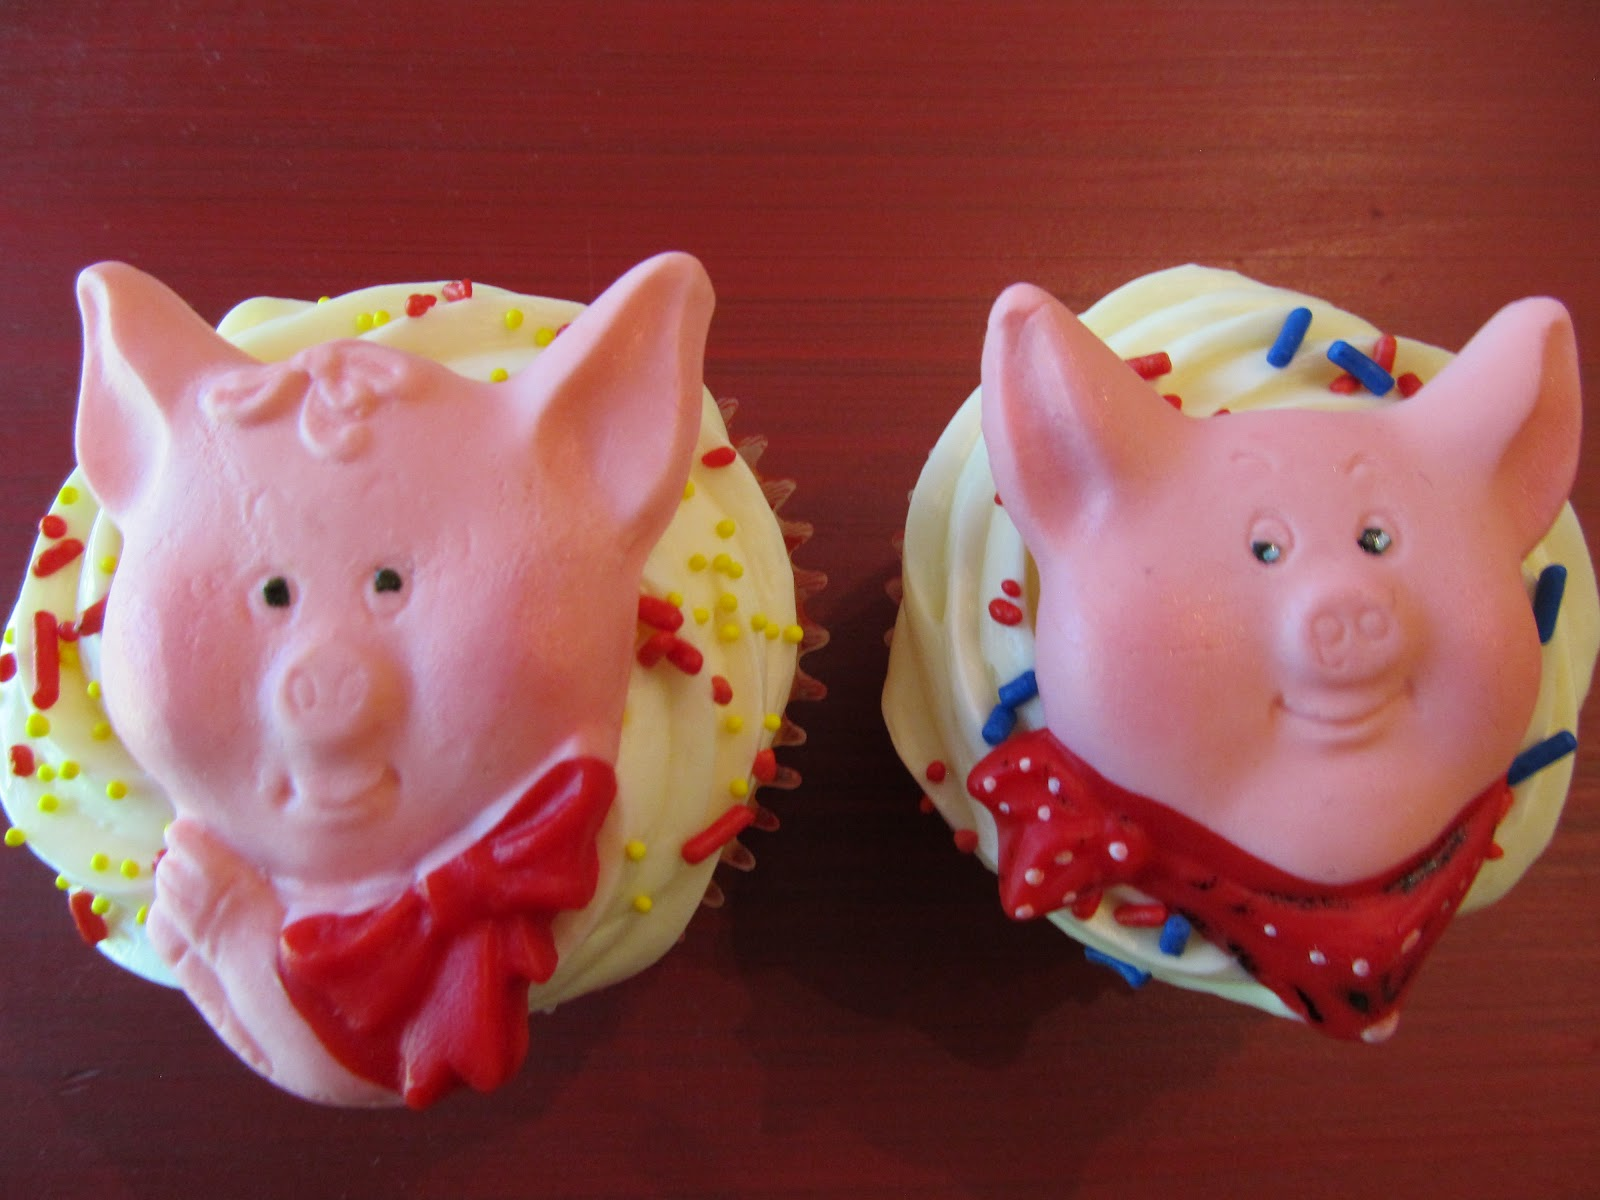 Decorate The Cake: Pigs, Bacon and more!